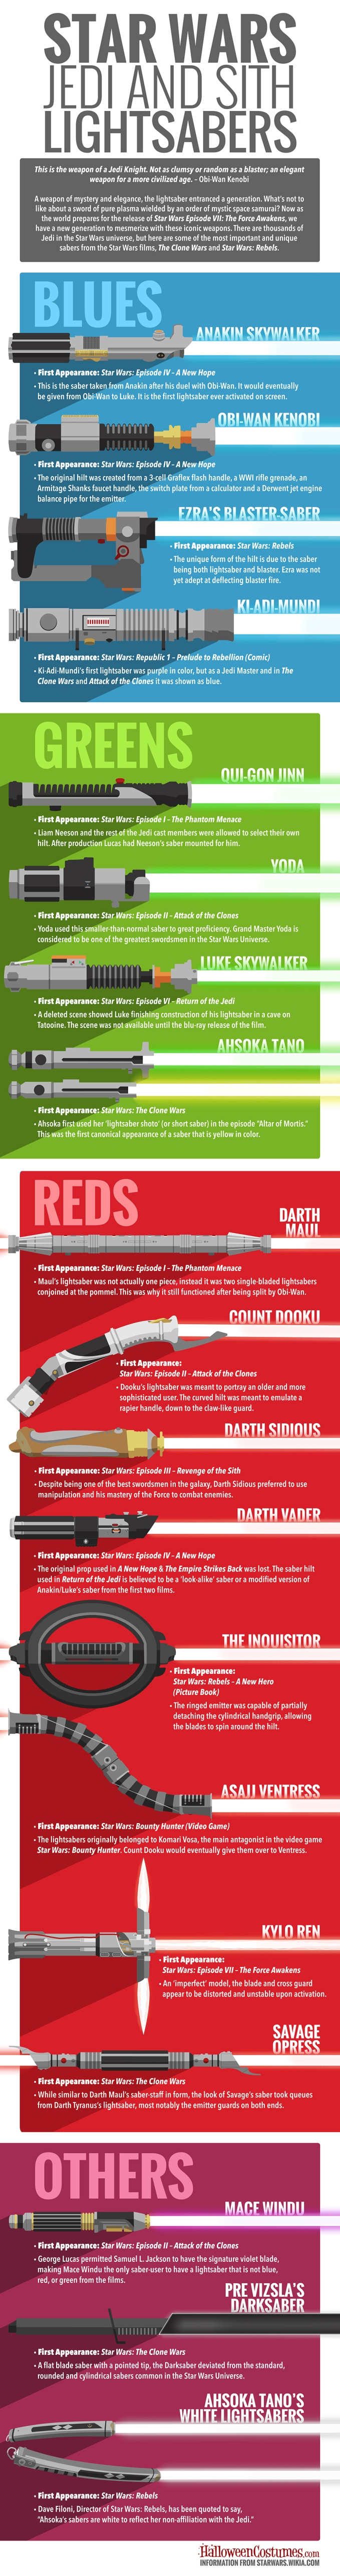 Star-Wars-Lightsabers-Infographic